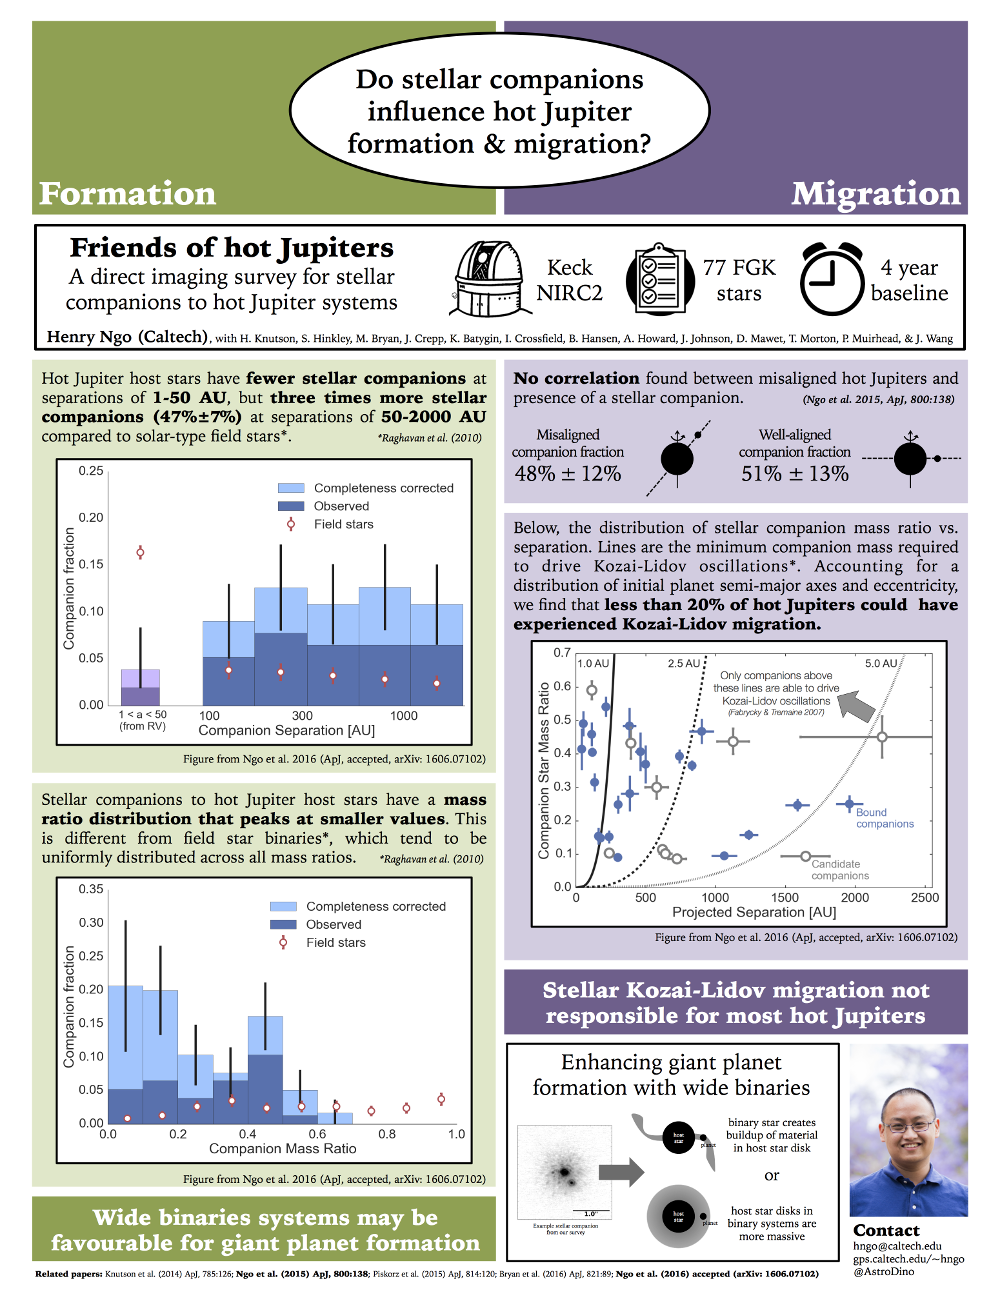 Friends of hot Jupiters poster presented at Exoplanets I